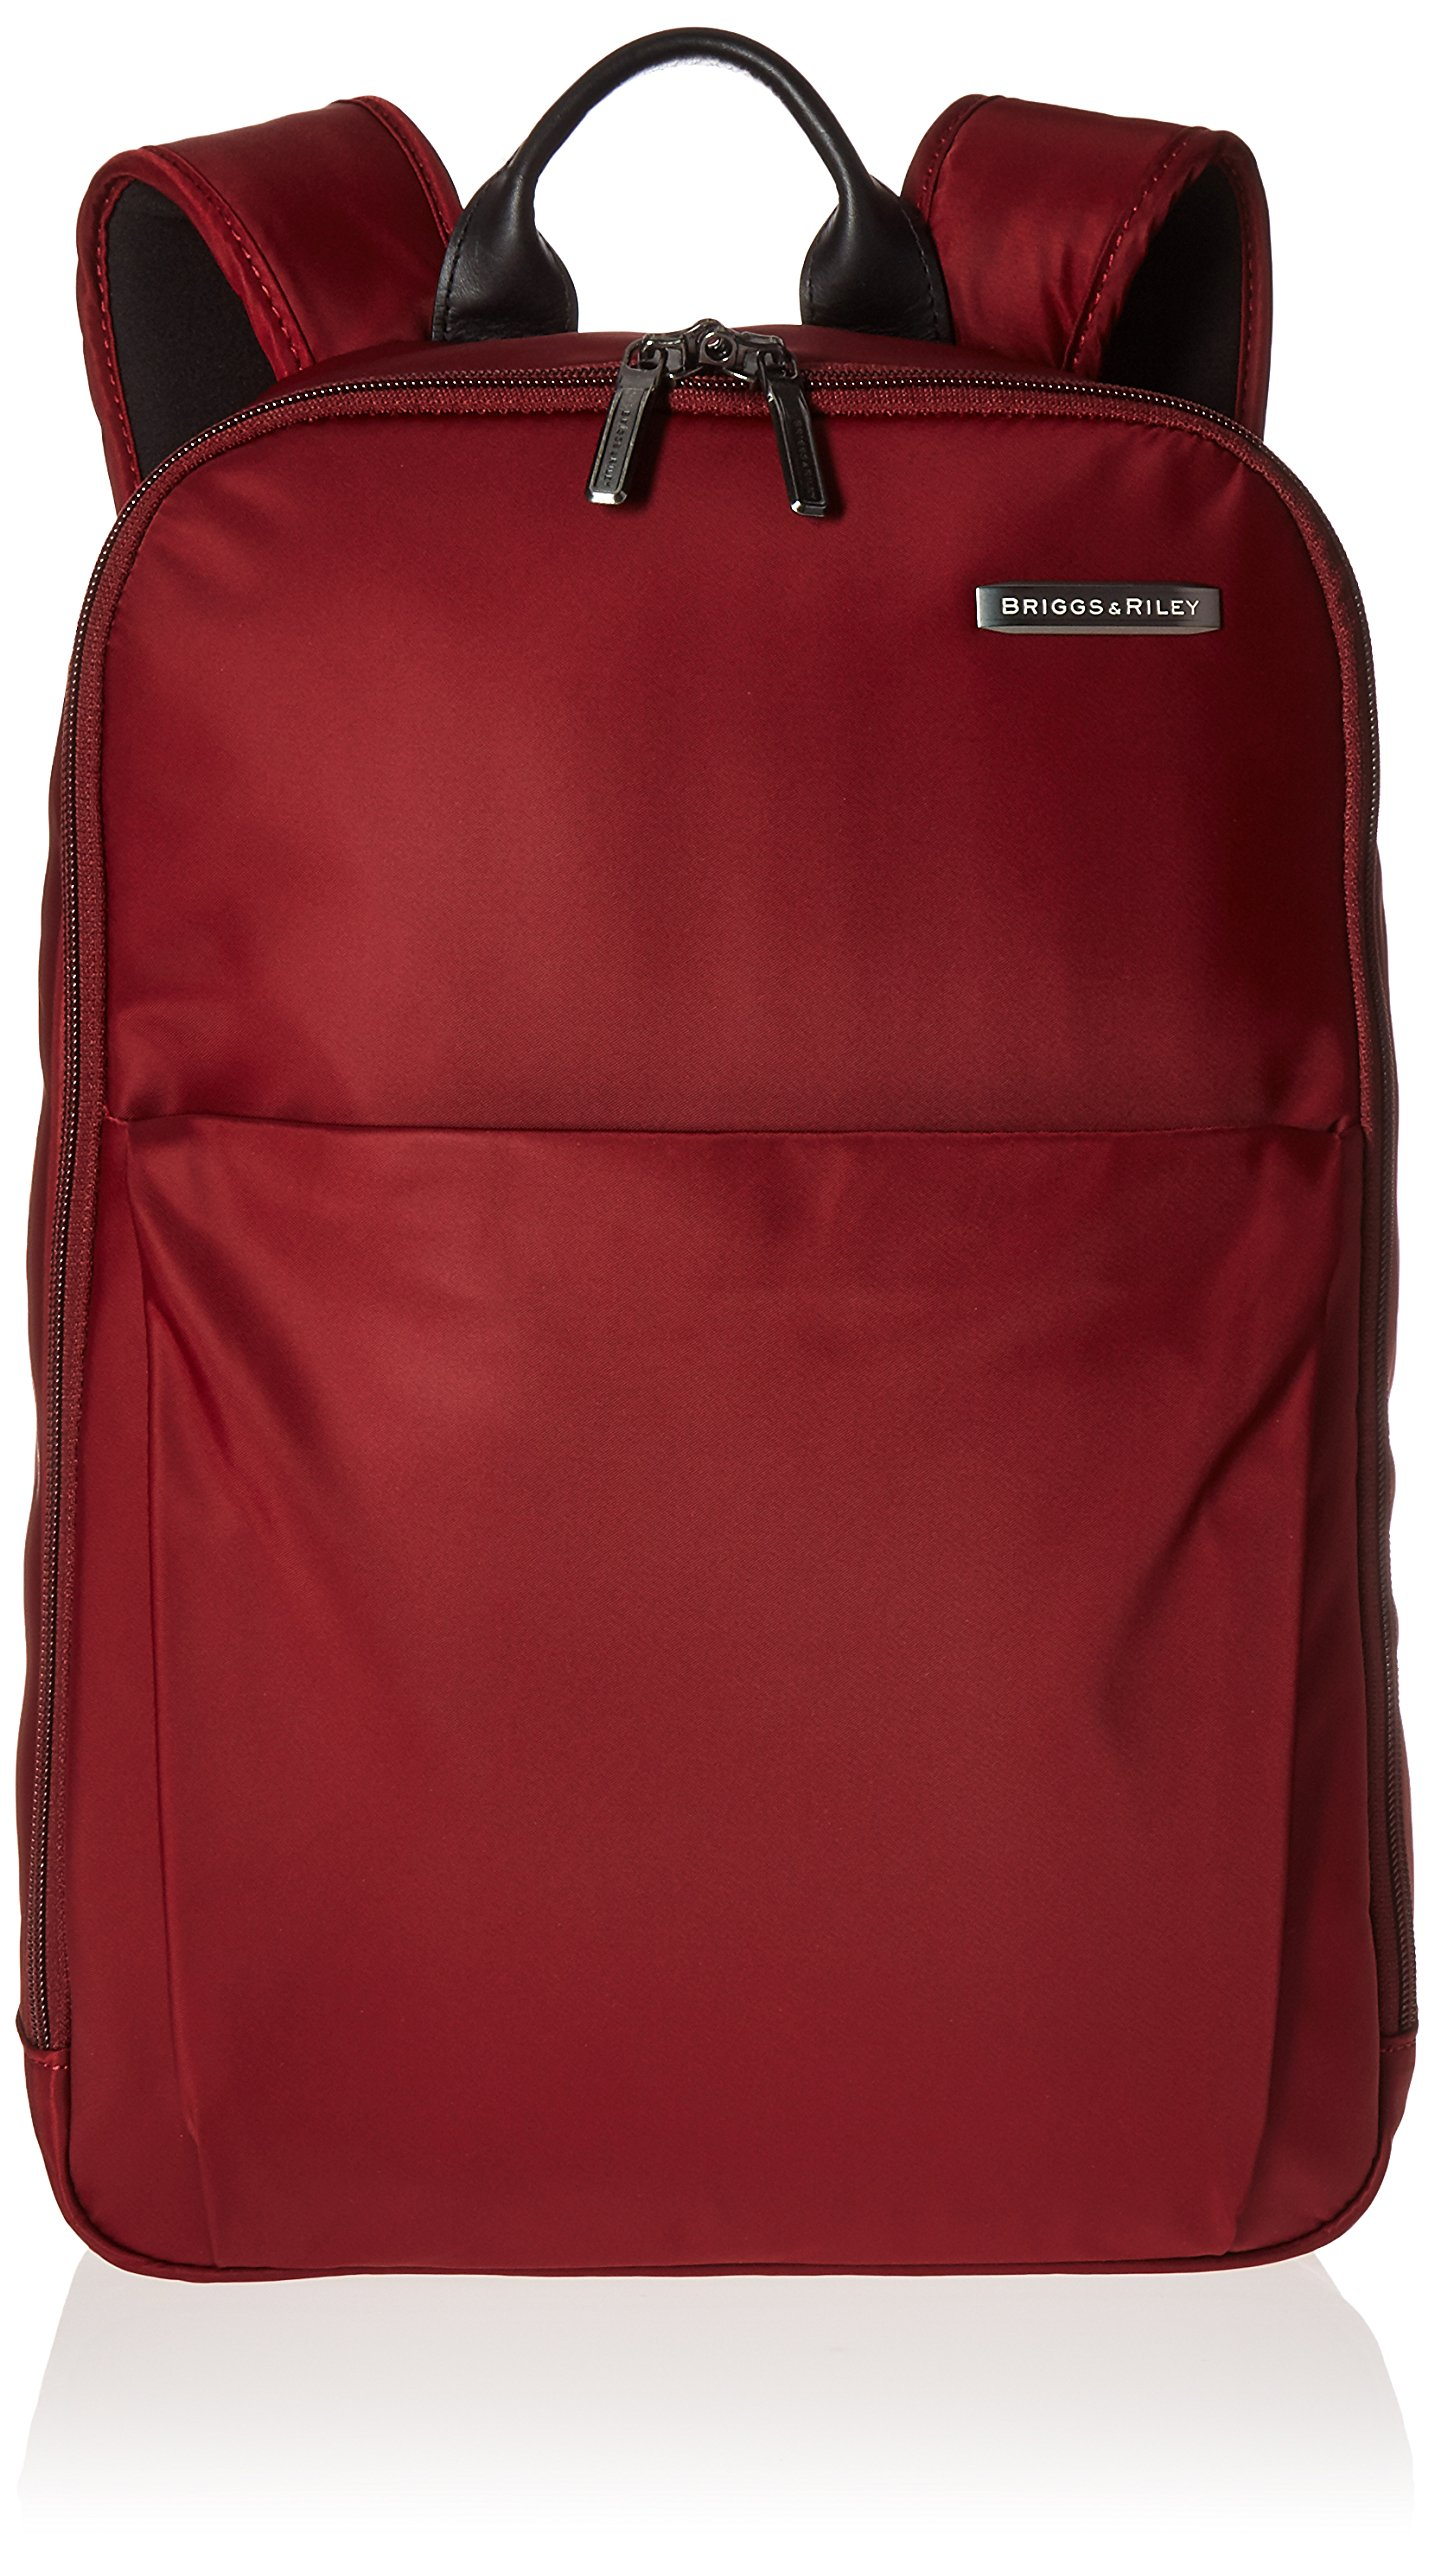 Briggs & Riley Sympatico Backpack, Burgundy